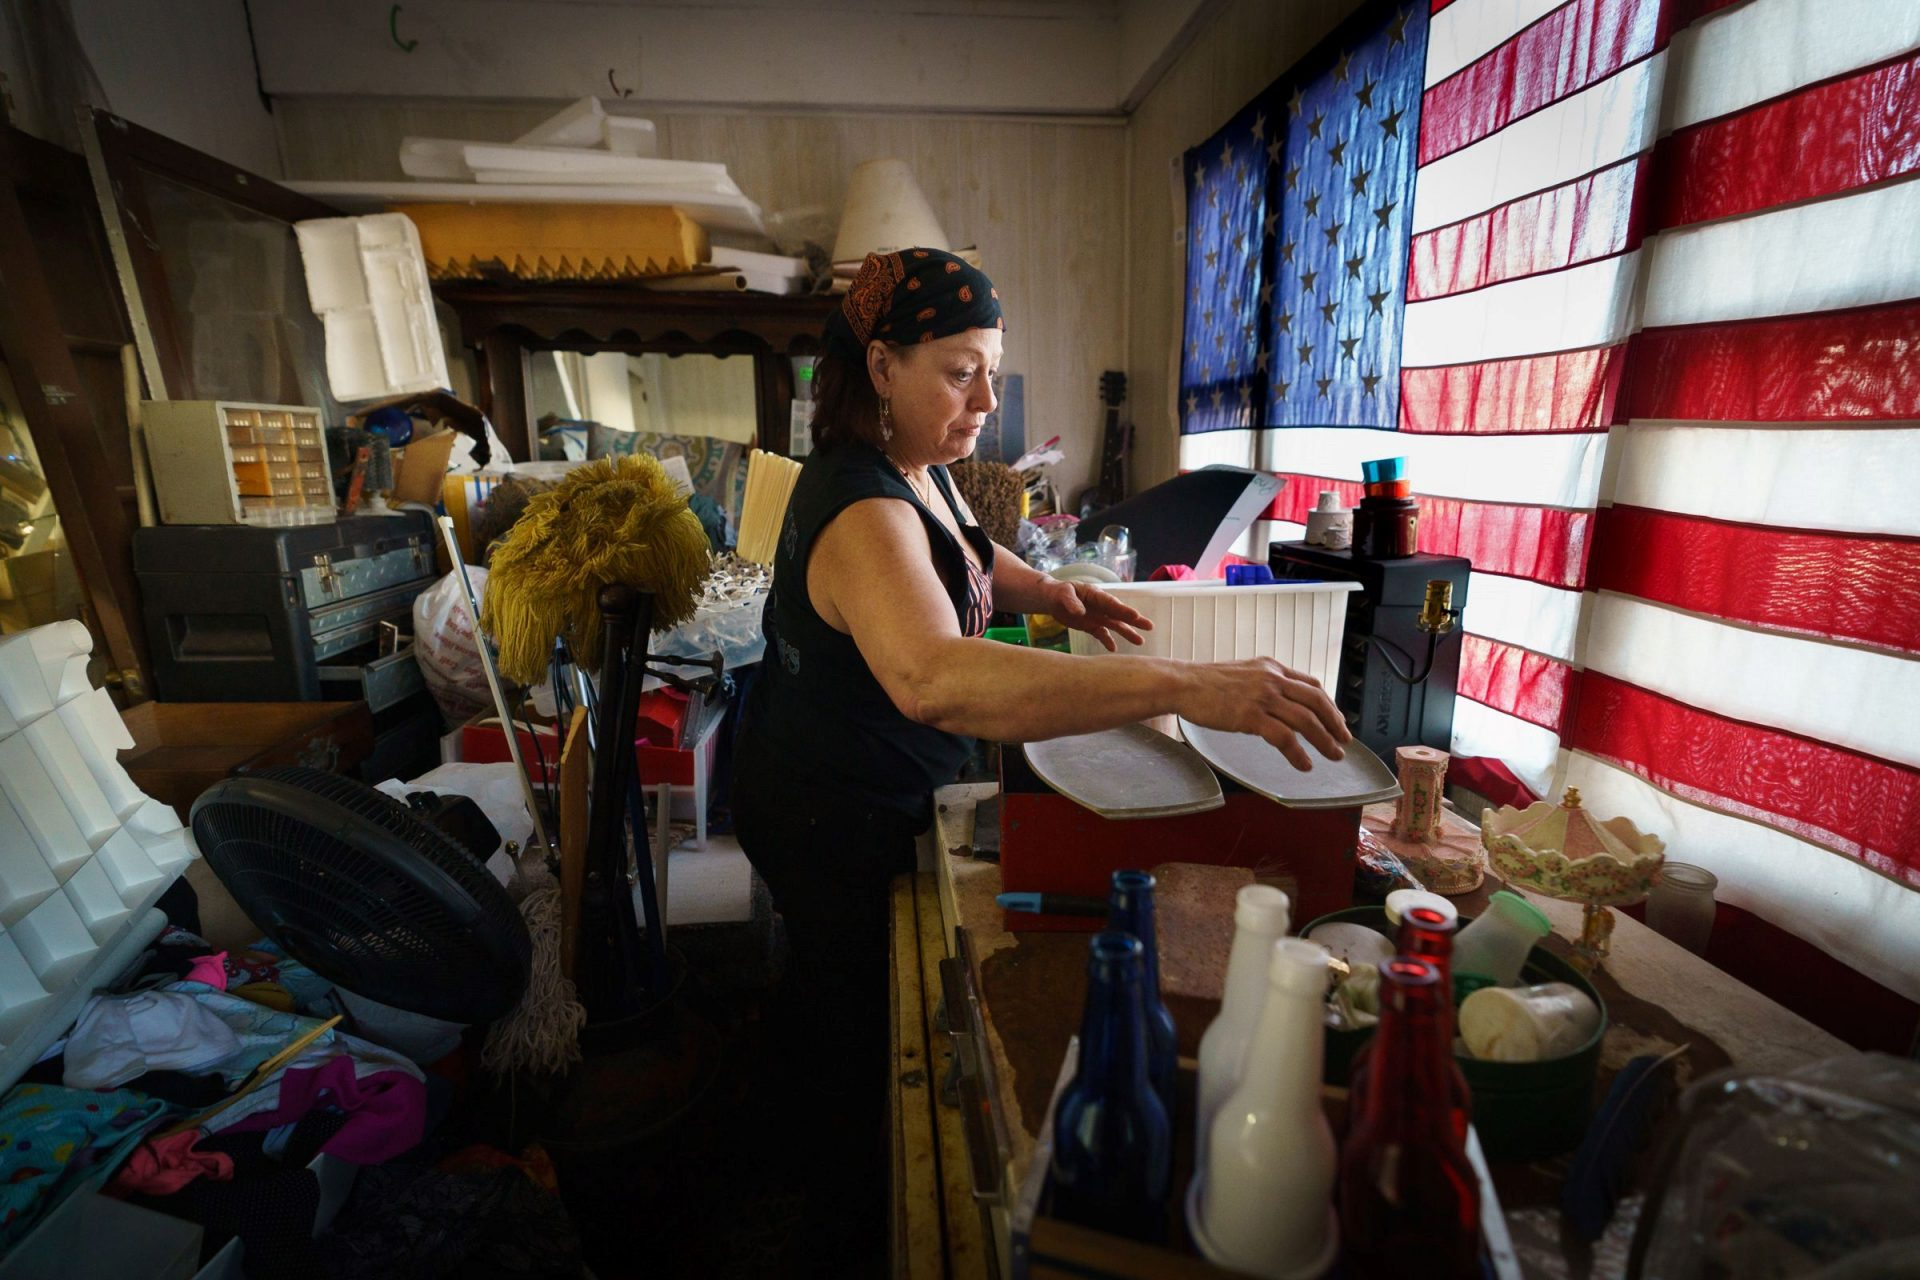 Sandra Huffman, shown here at her home in East Greenville, Pa., has been unemployed since April when she got sick while working a hospital cleaning job. She has been receiving money from the coronavirus assistance fund, but has struggled during a monthlong gap in benefits.